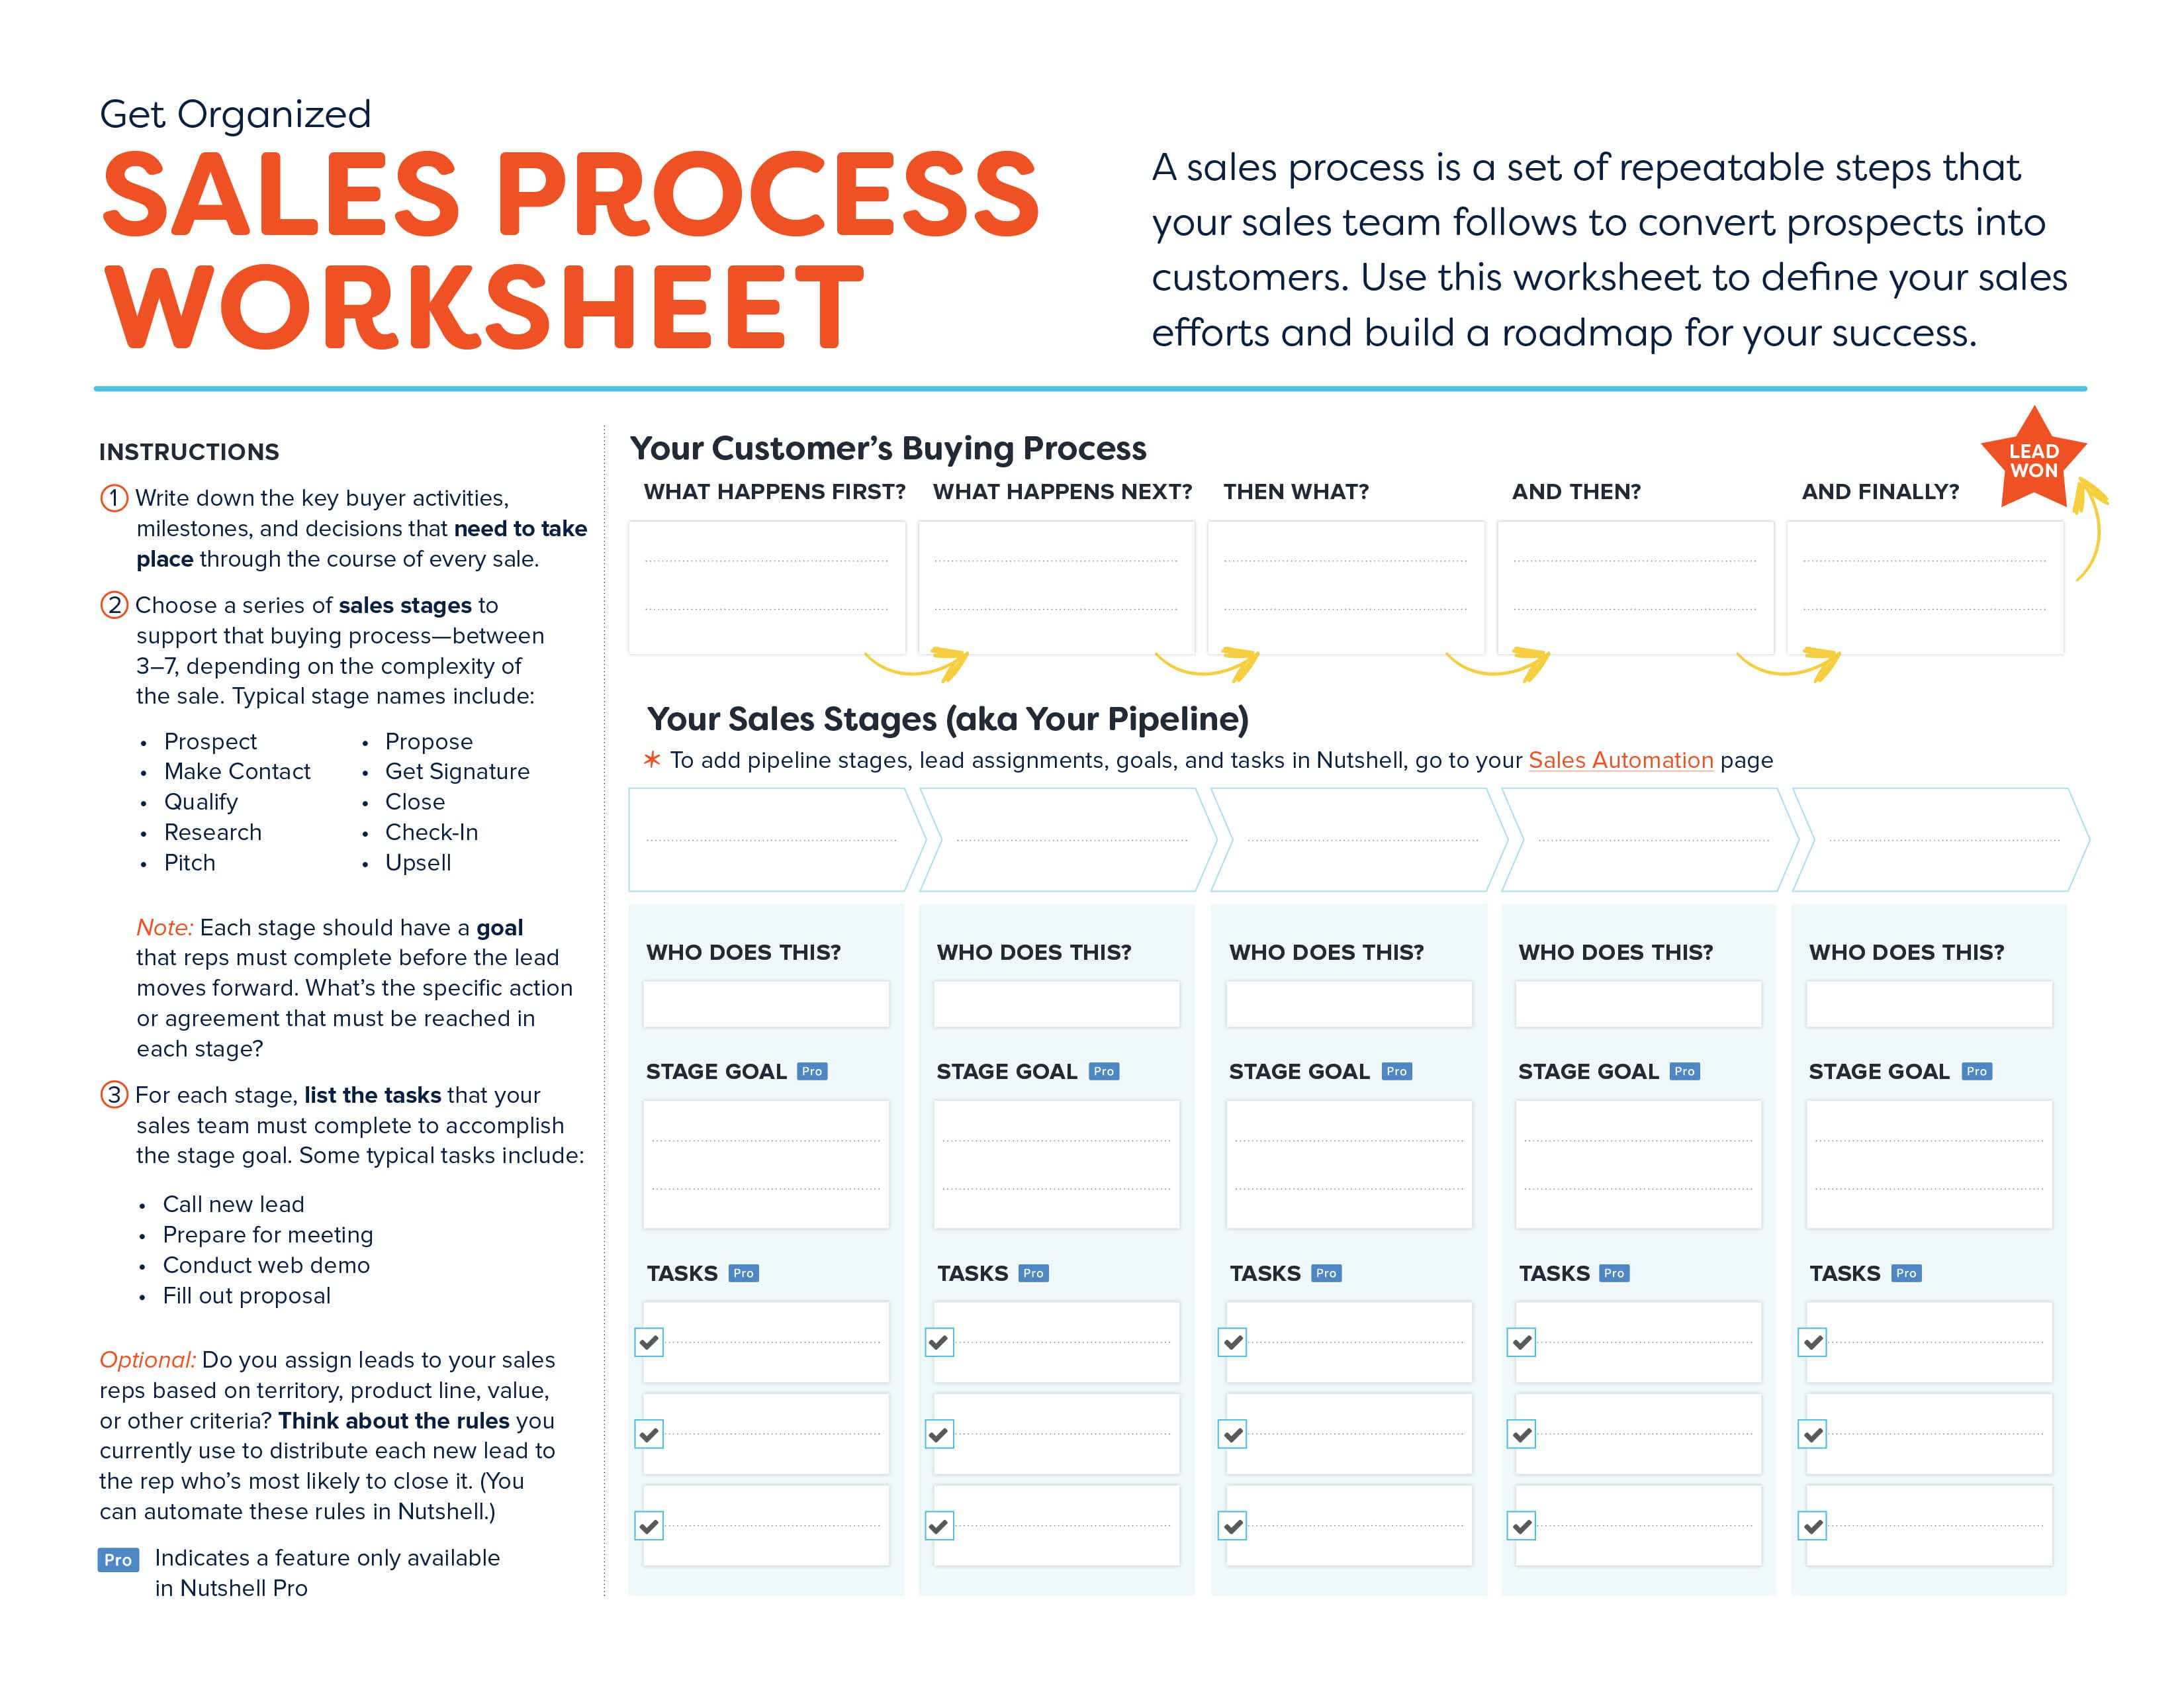 The Electoral Process Worksheet